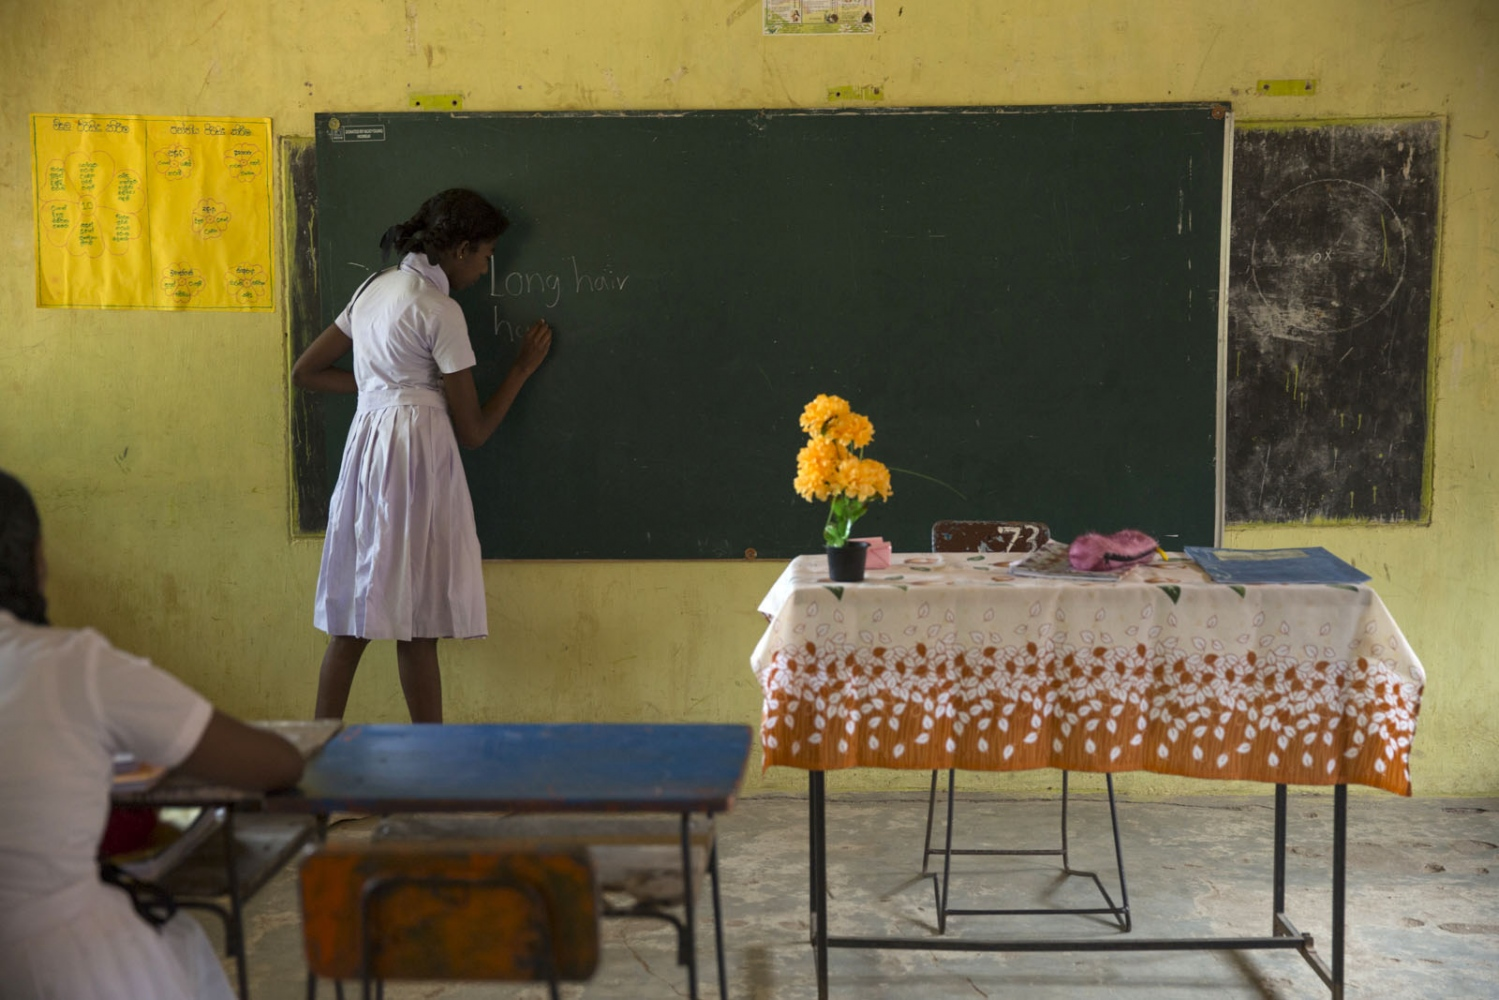 Afro-Sri Lankan Olivia Alexander, 14, practices writing english on the black-board at Siriambadiya school. Siriambadiya, Sri Lanka - January 2017